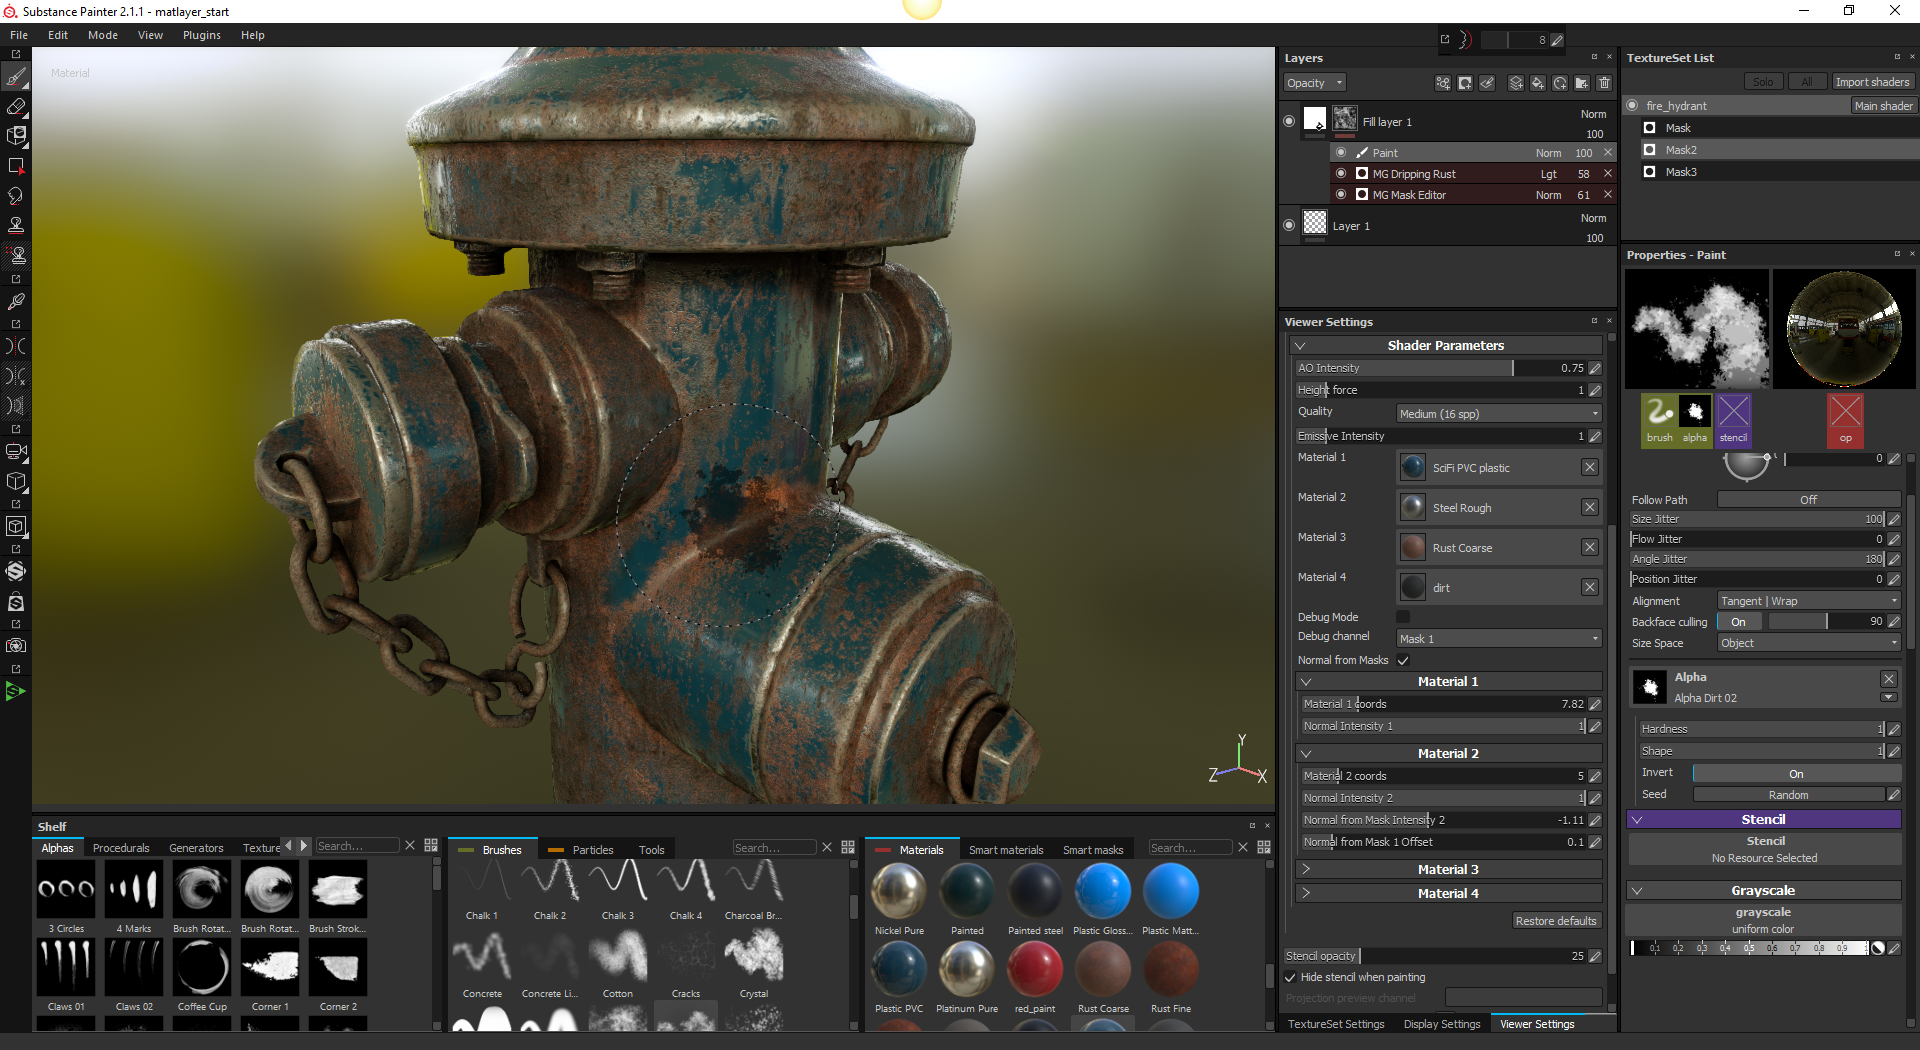 14 best alternatives to Substance Painter as of 2019 - Slant